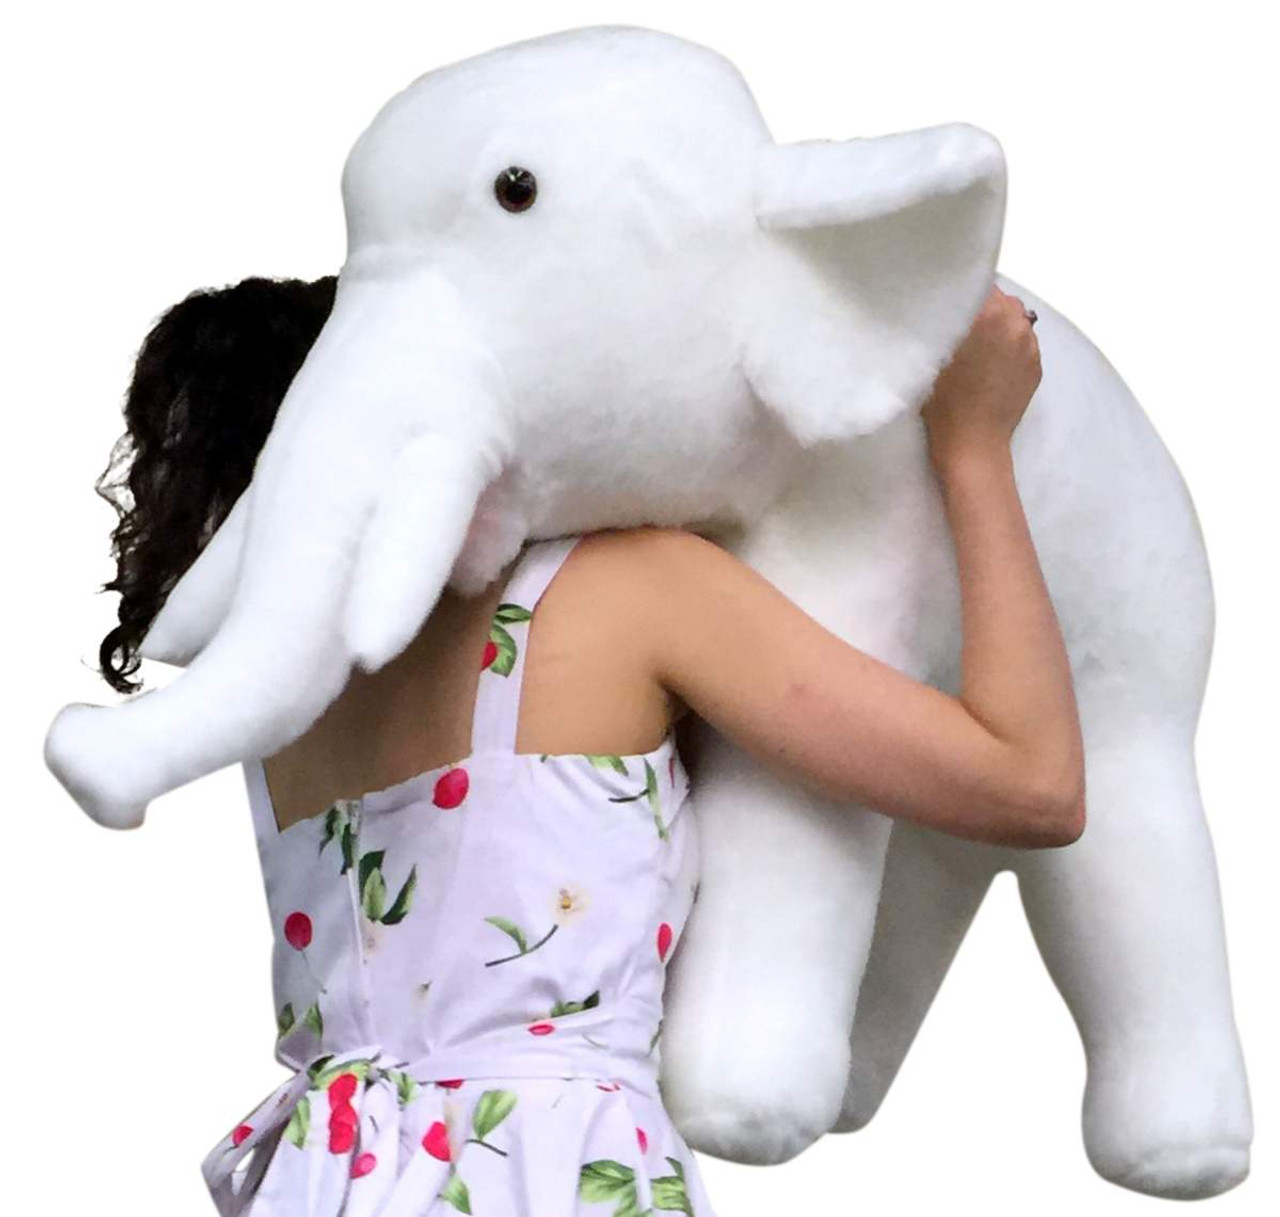 American Made Giant Stuffed White Elephant 3 Feet Long Soft Large